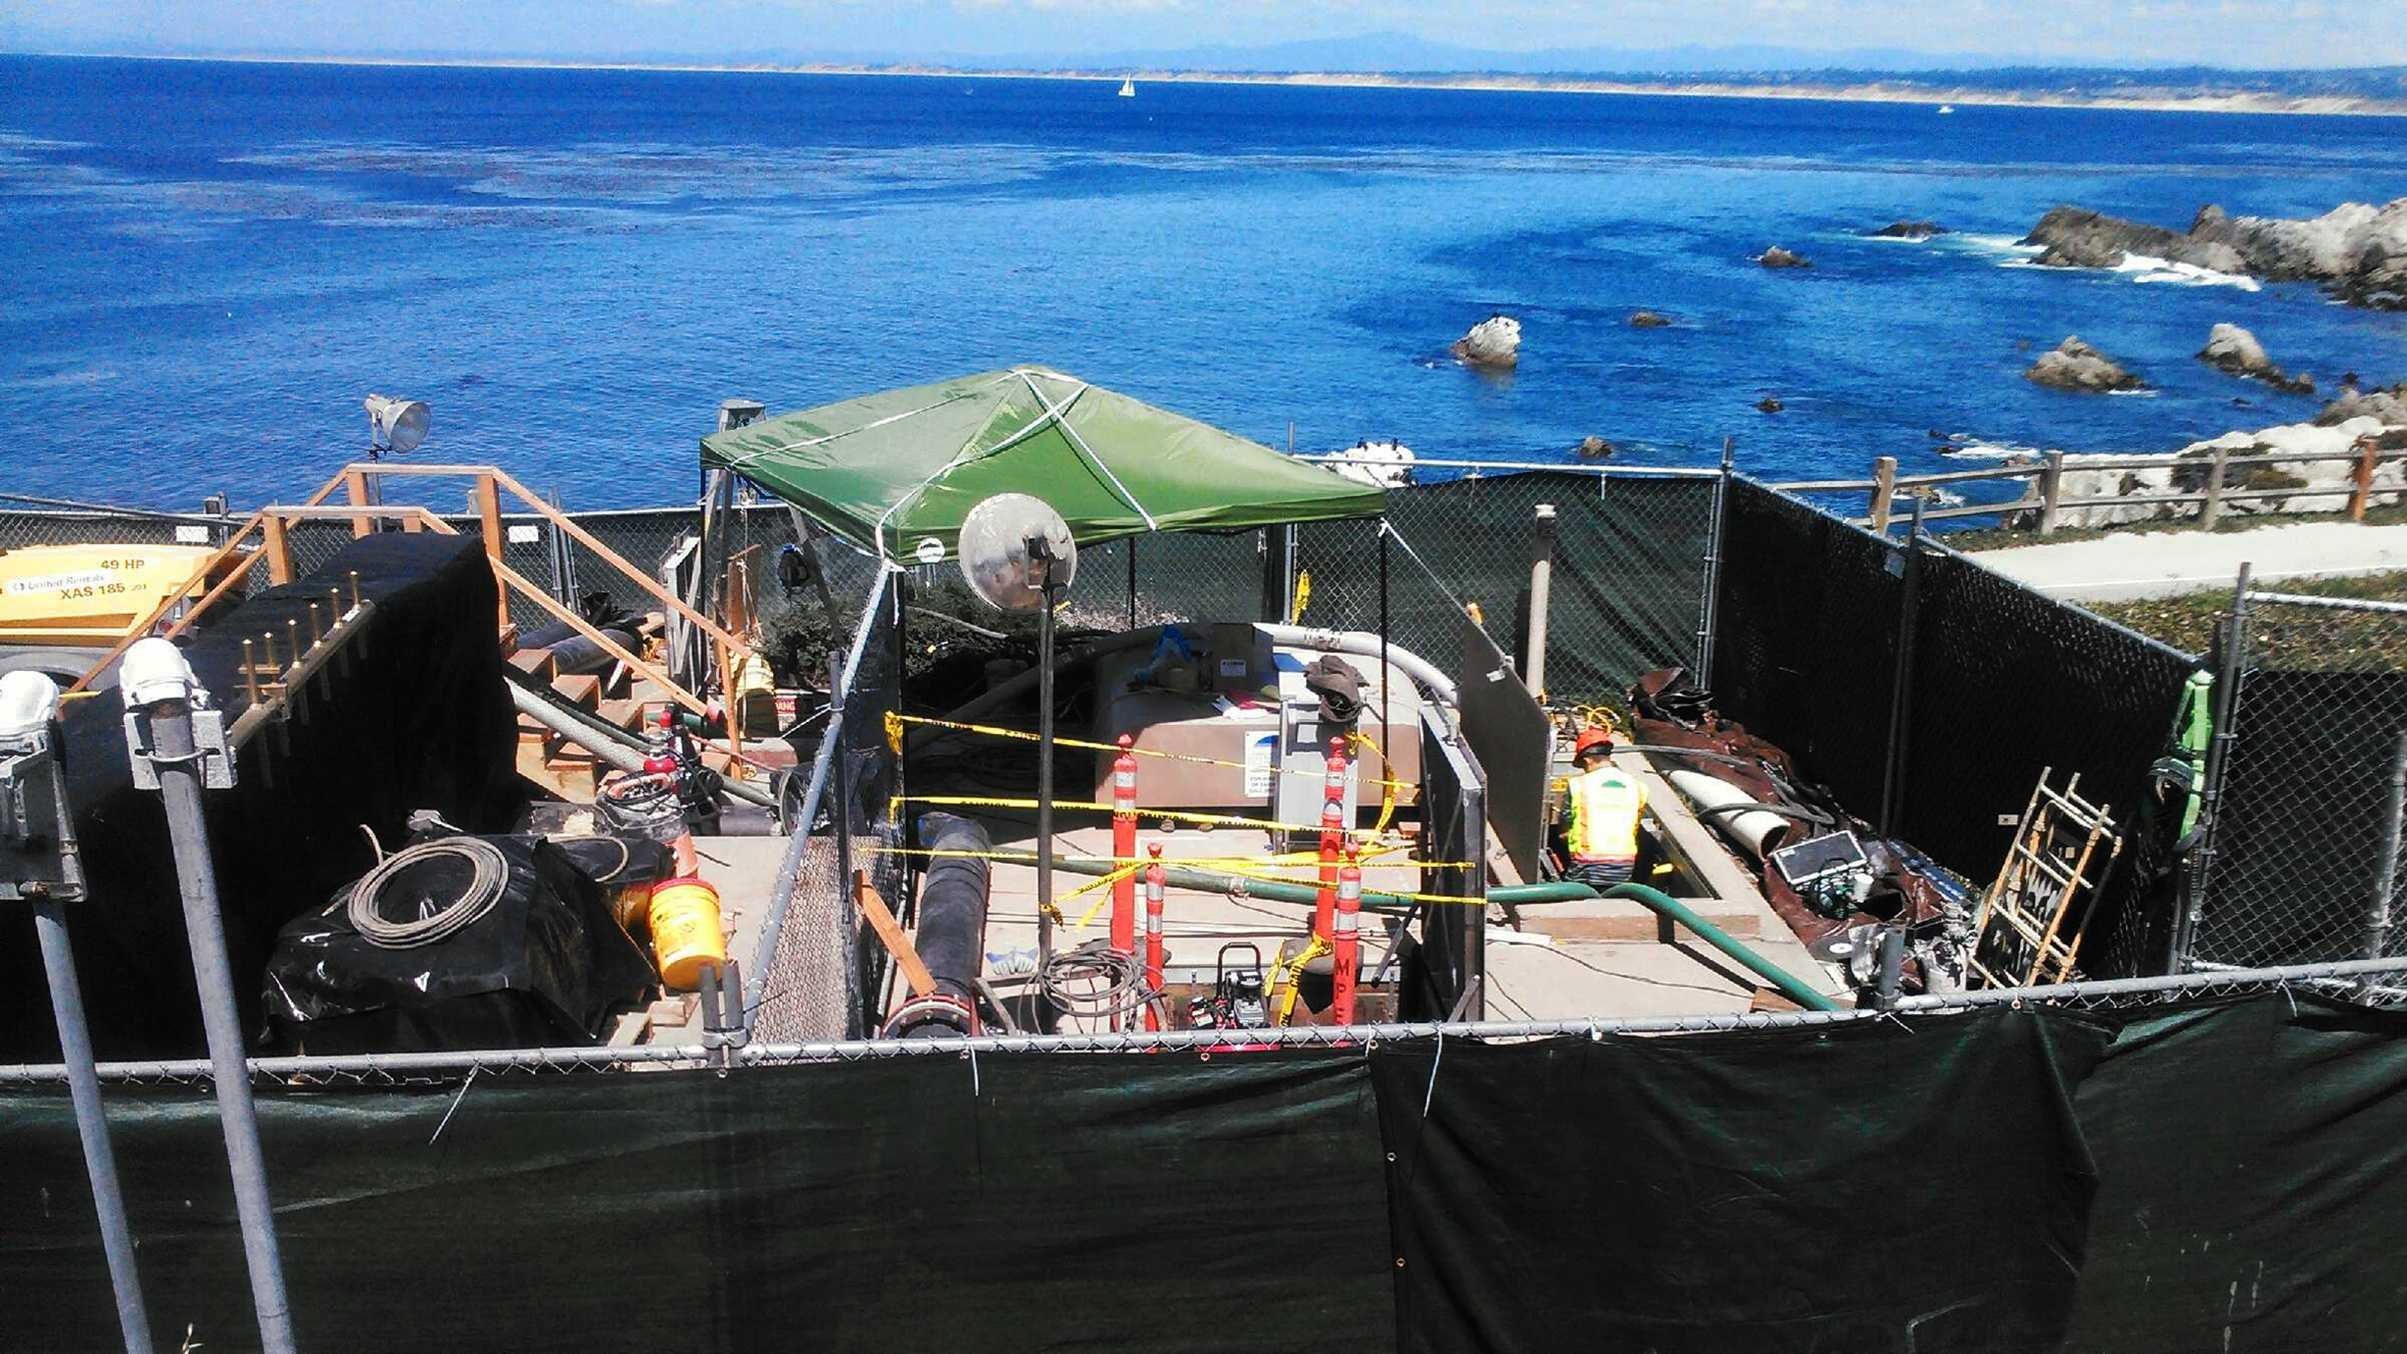 Pacific Grove sewage spill (May 18, 2015)